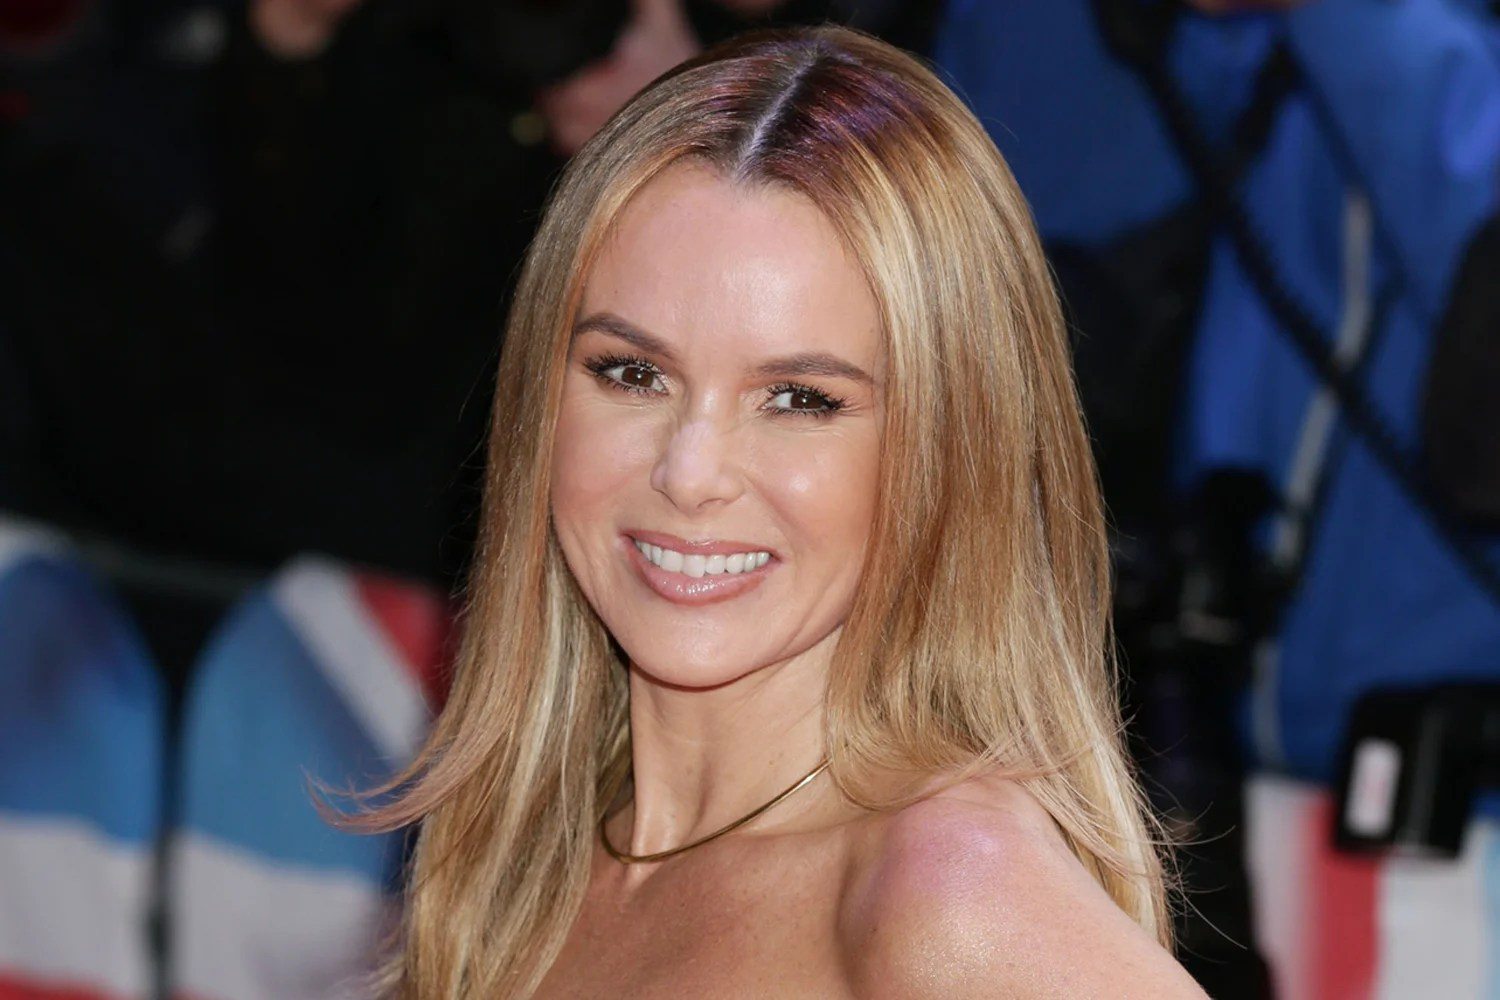 Arsenal Live Wallpaper Hd Amanda Holden My Daughter Was Dressed As Cindy Crawford